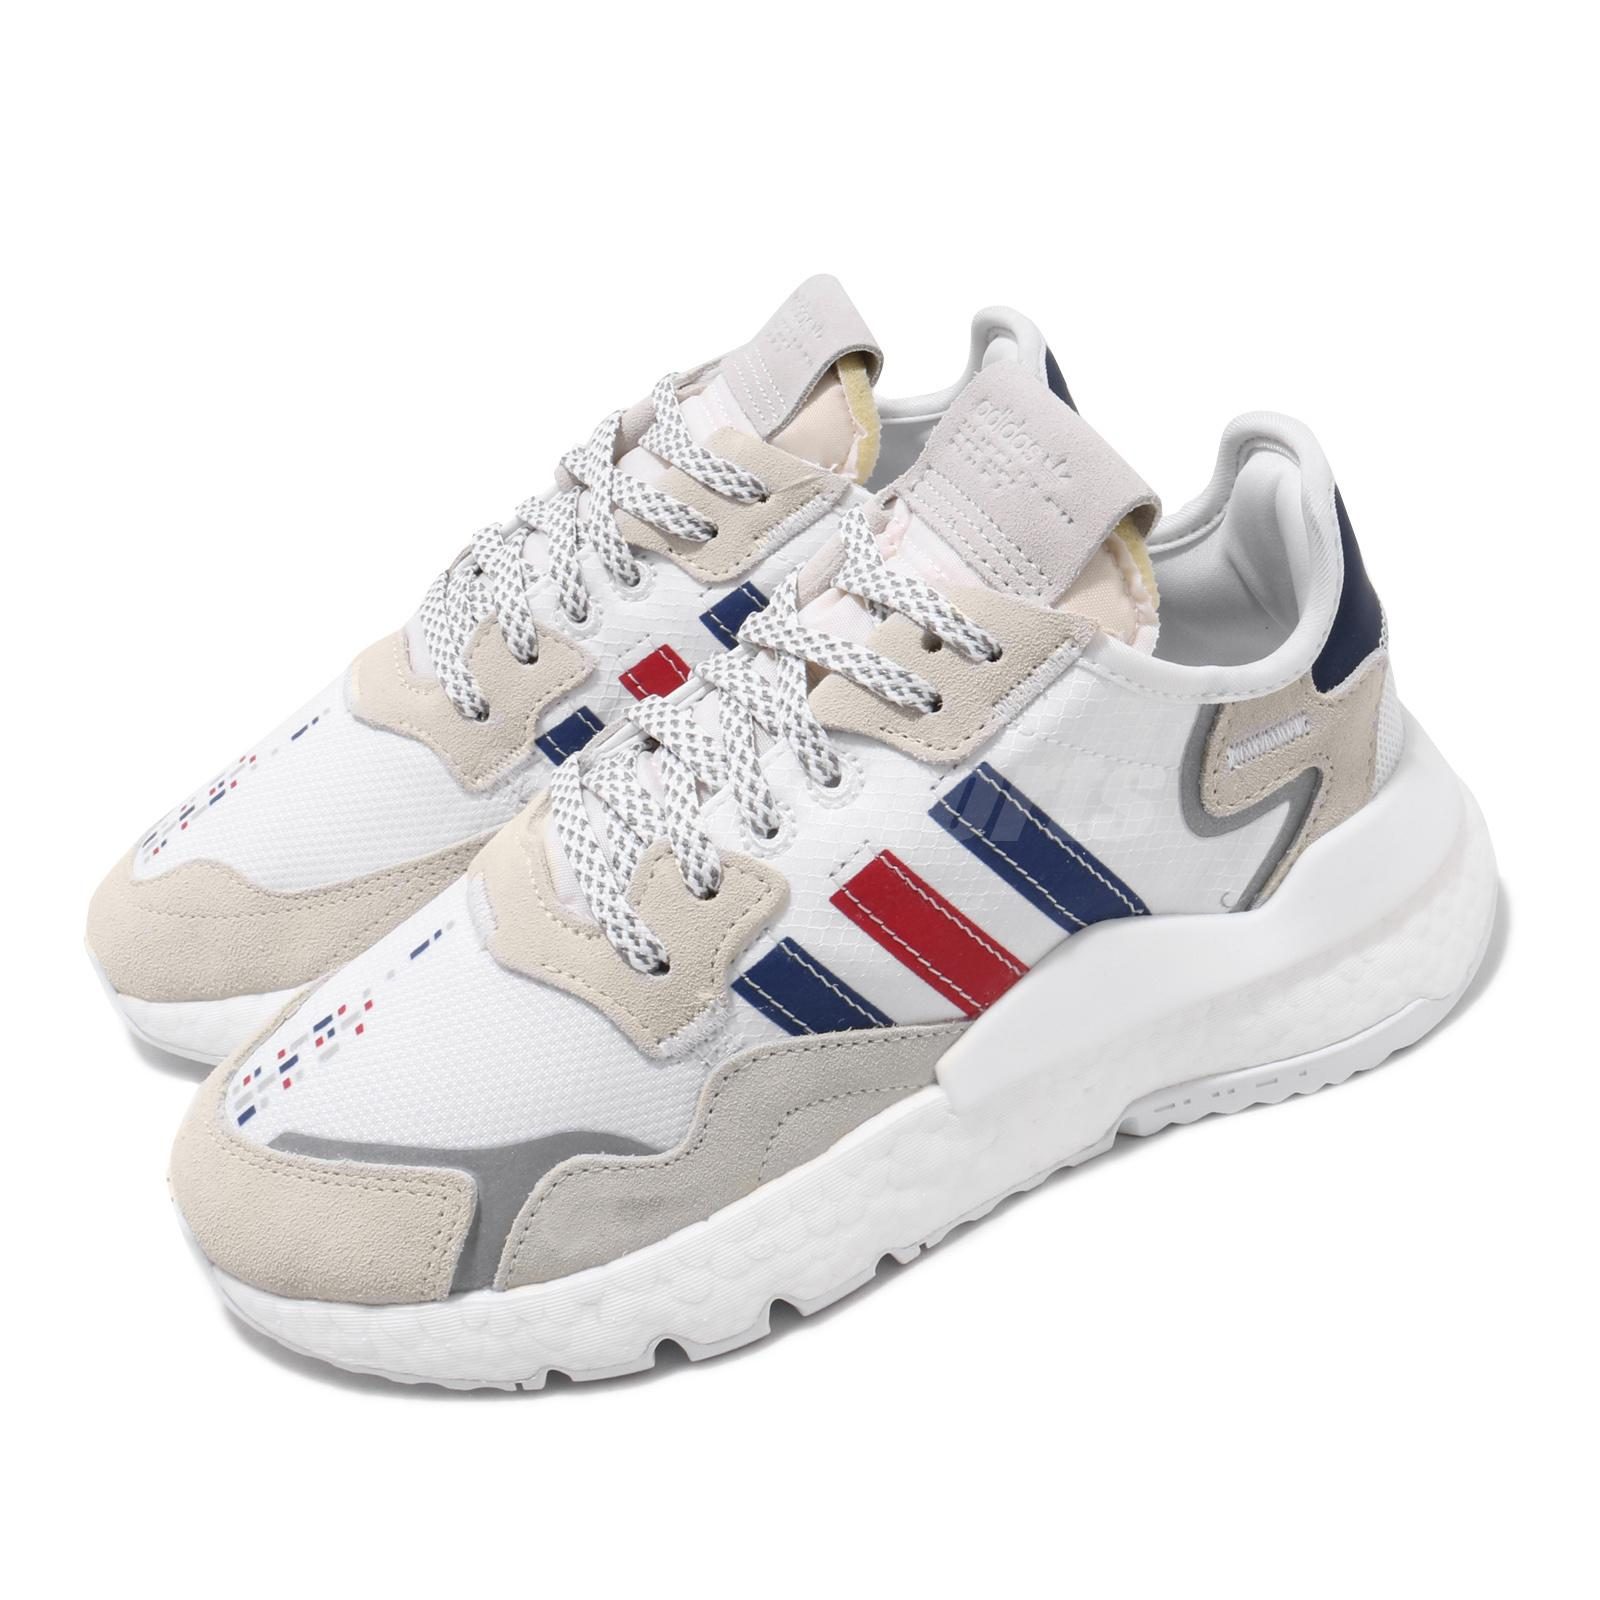 llegando diseño atemporal diseño elegante adidas Originals Nite Jogger BOOST White Royal Blue Red Men Casual Shoes  FV3586 | eBay